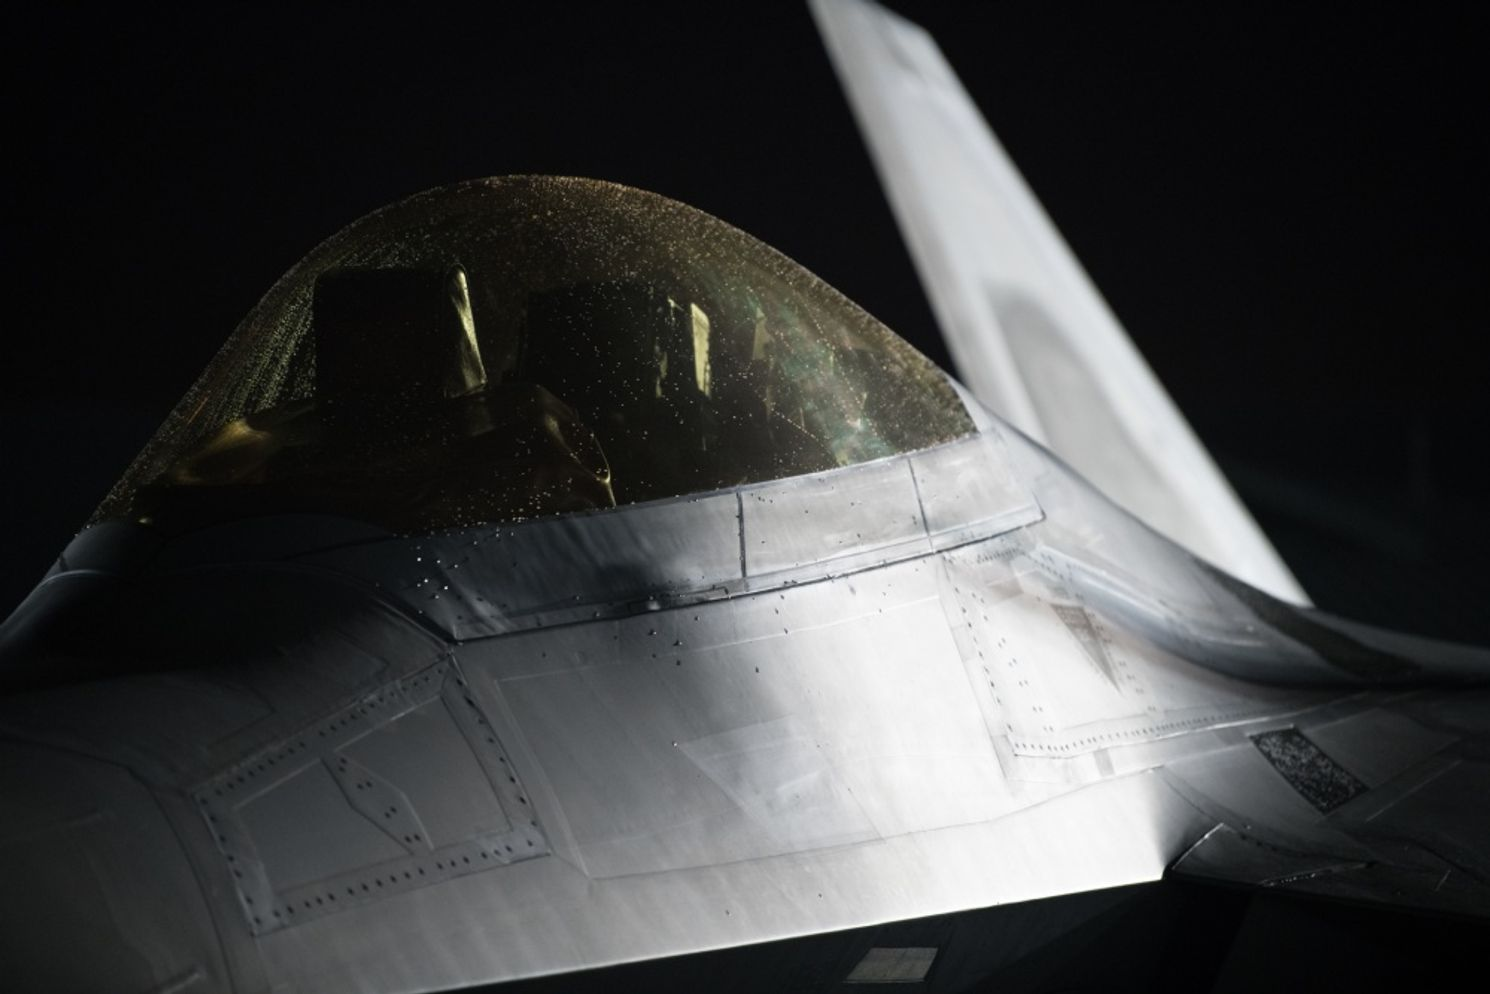 No Cloaking Device Here: F-22 Stealth Fighters Can Be Tracked